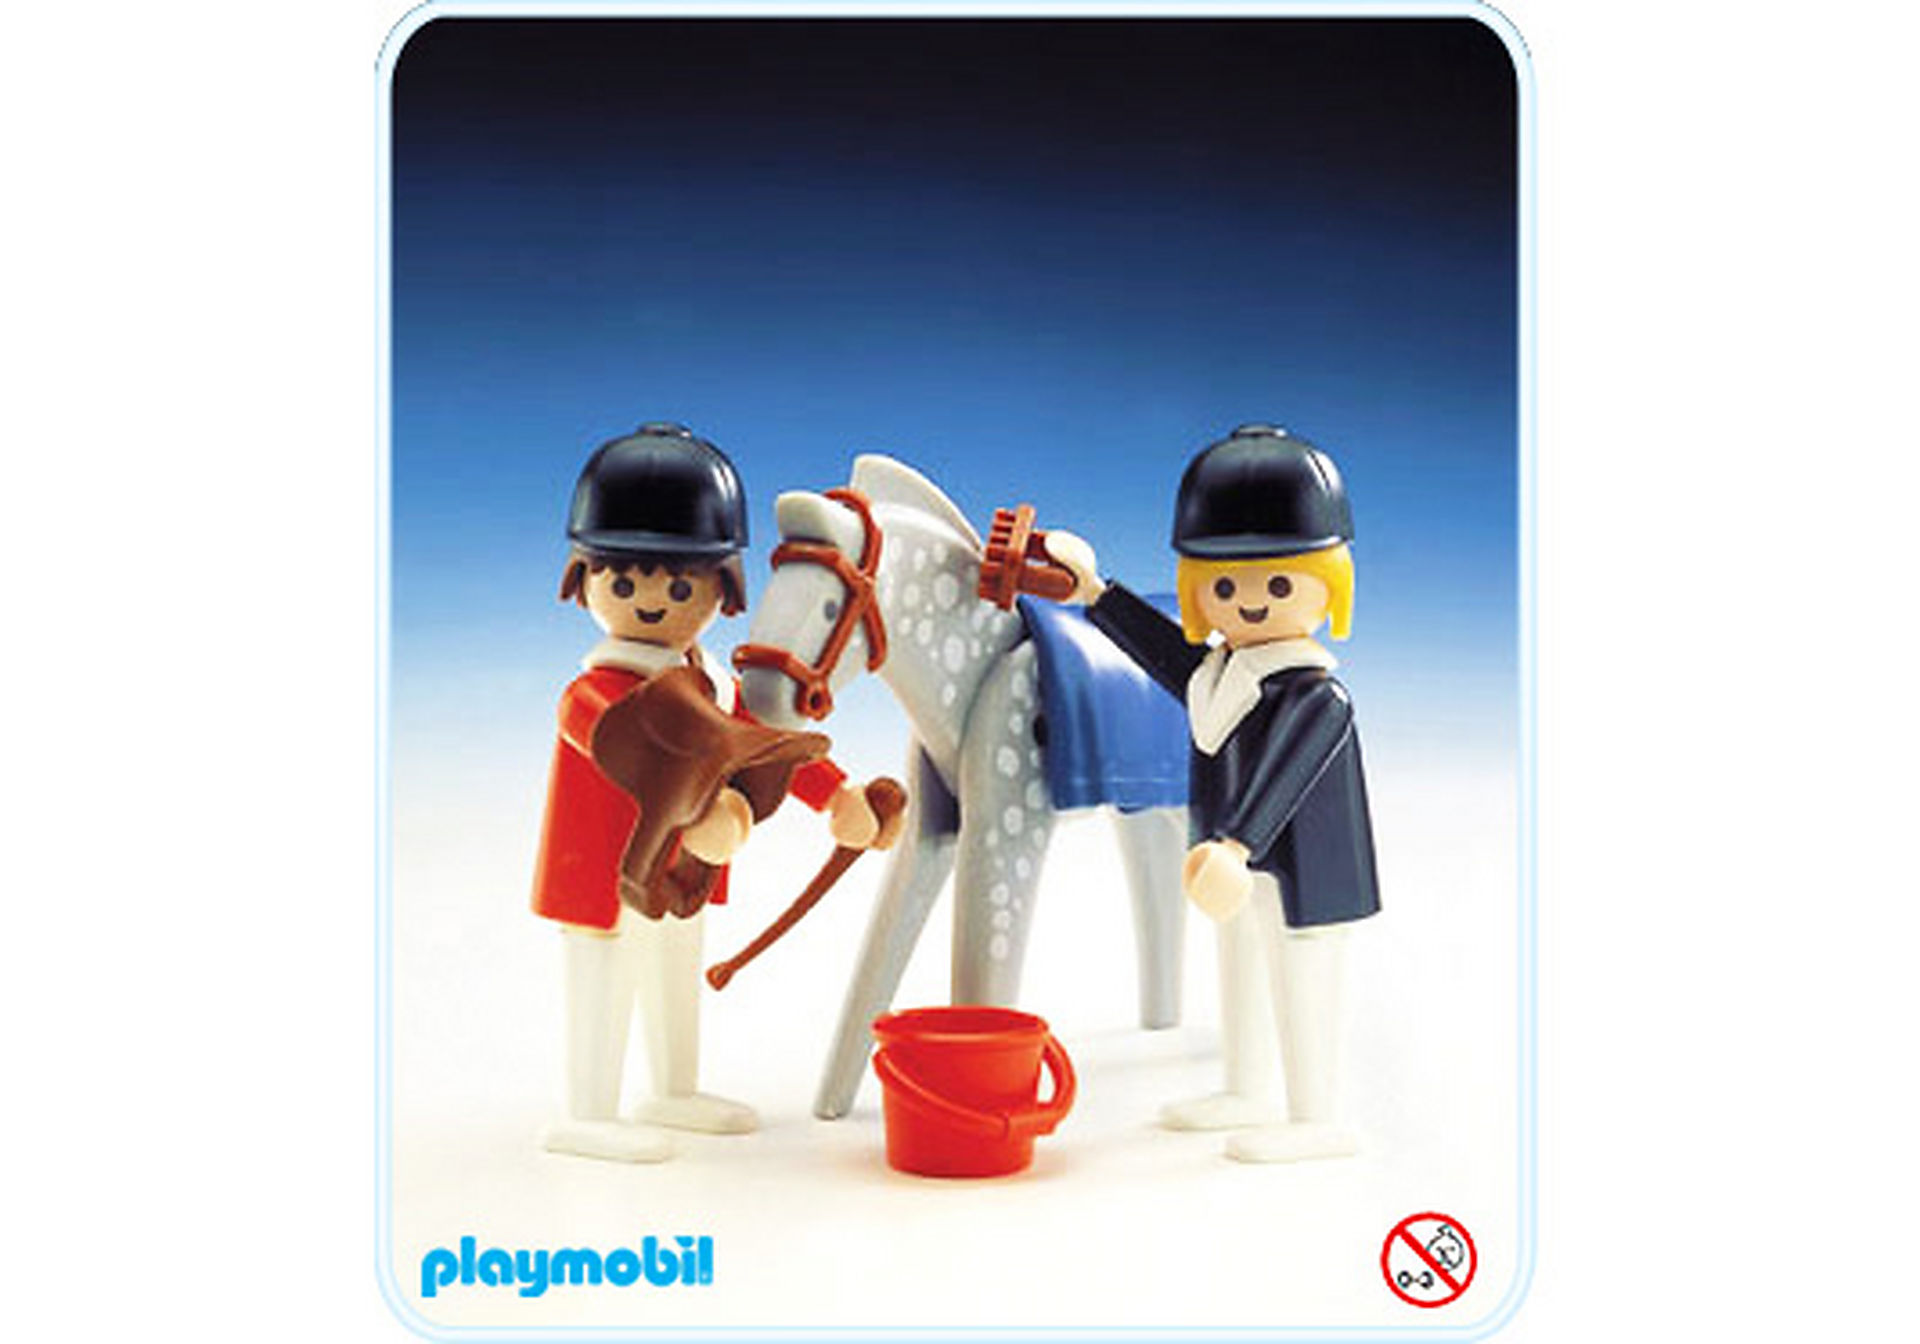 http://media.playmobil.com/i/playmobil/3305-A_product_detail/2 Reiter/Pferd